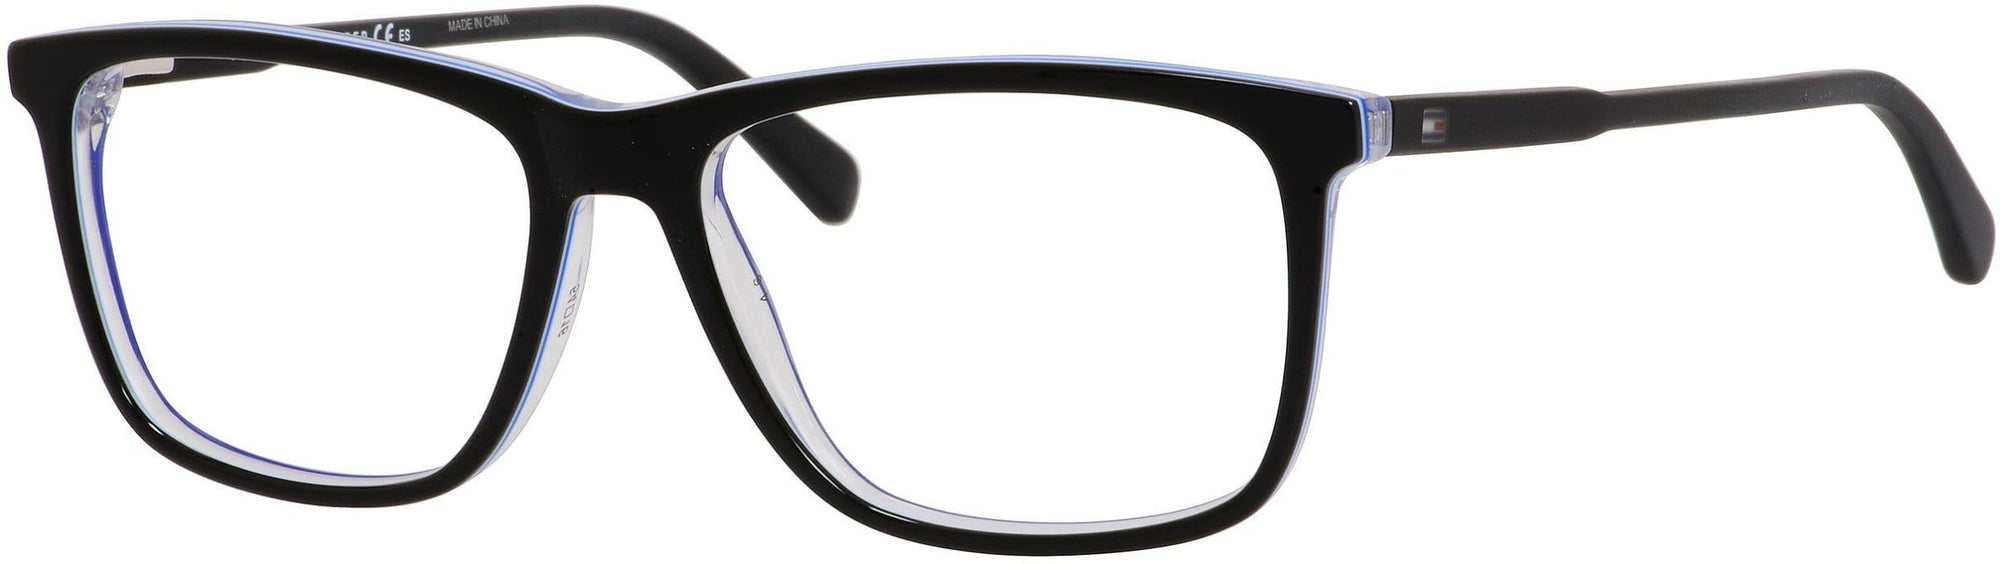 Tommy Hilfiger TH 1317 Rectangular Eyeglasses